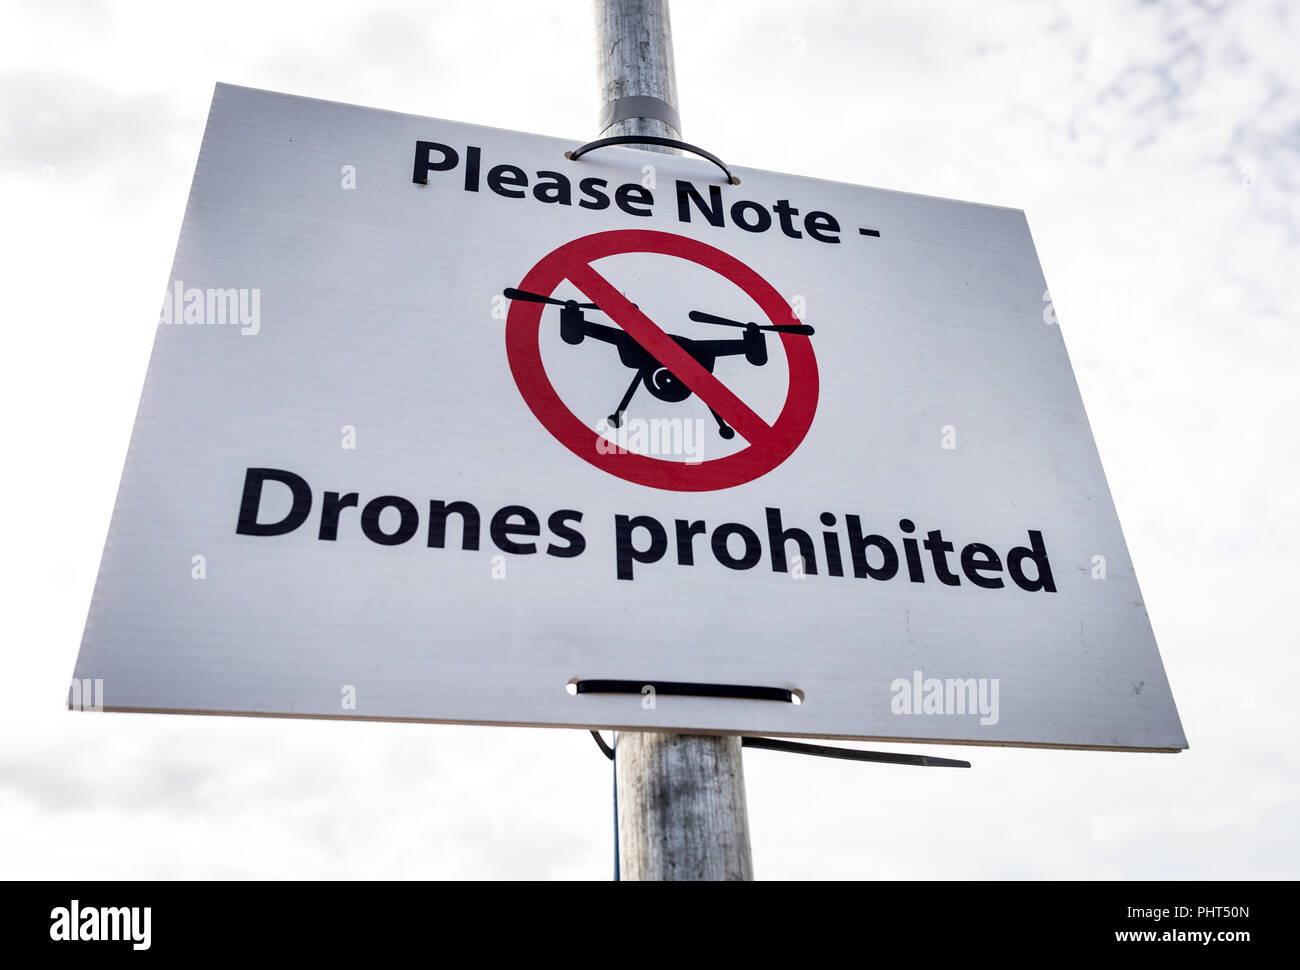 No Drone flying zone sign in Bournemouth, Dorset, UK - Stock Image